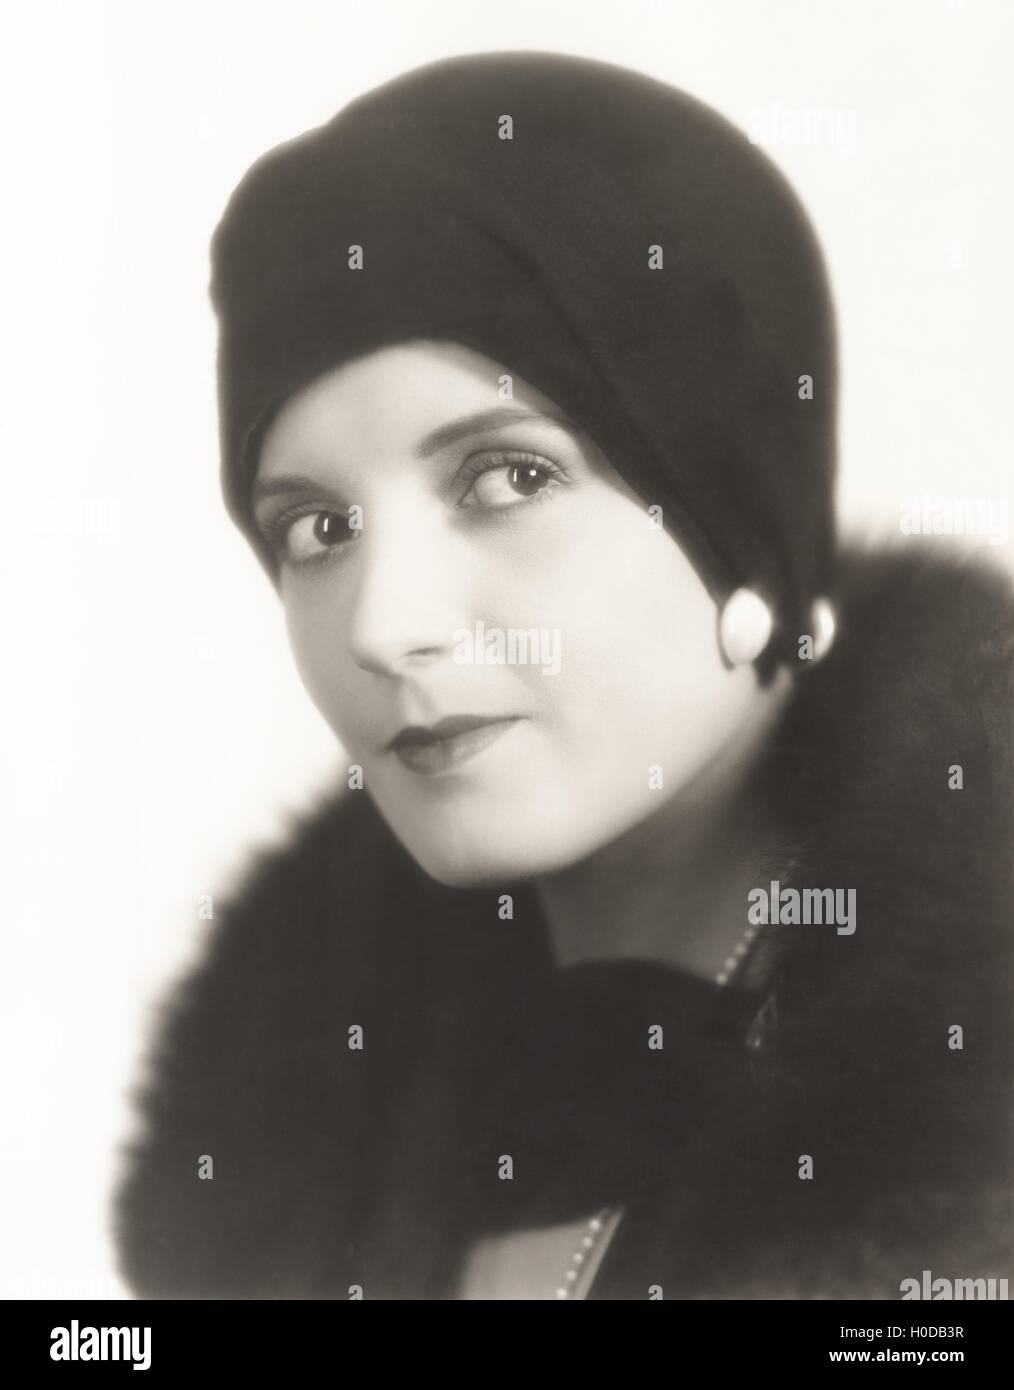 Portrait of woman in cloche hat - Stock Image